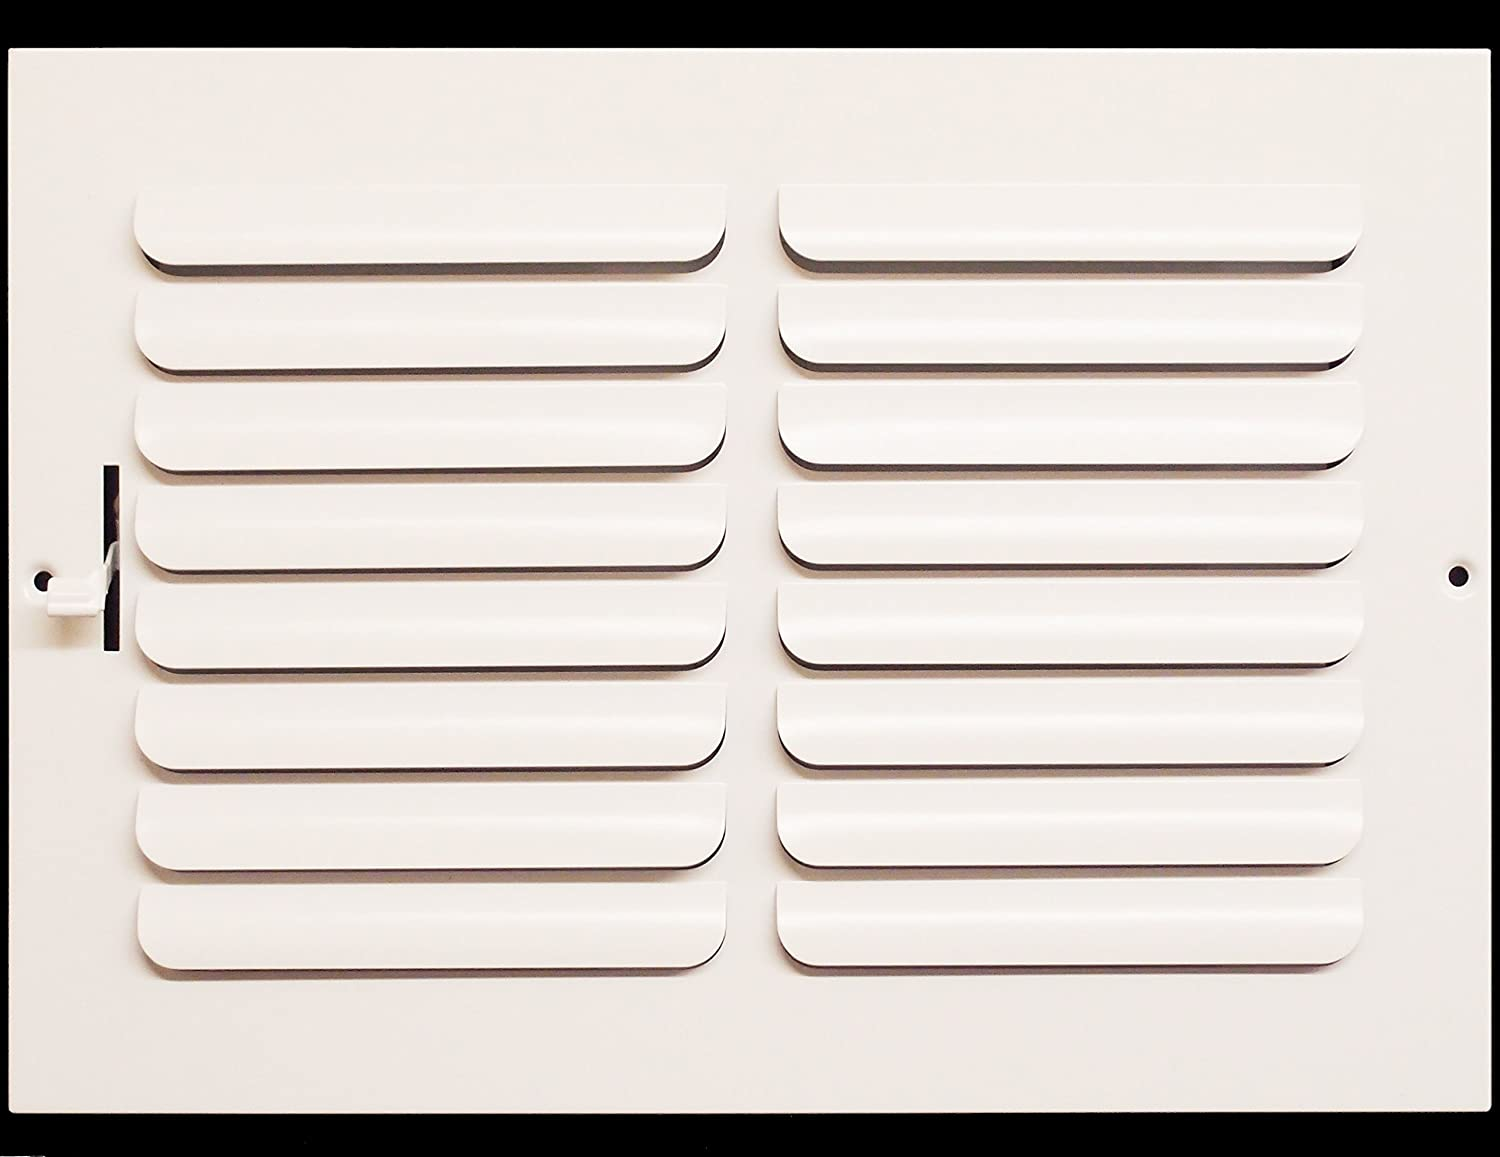 """12""""w x 8""""h 1-Way Fixed Curved Blade AIR Supply Diffuser - Vent Duct Cover - Grille Register - Sidewall or Ceiling - High Airflow - White"""